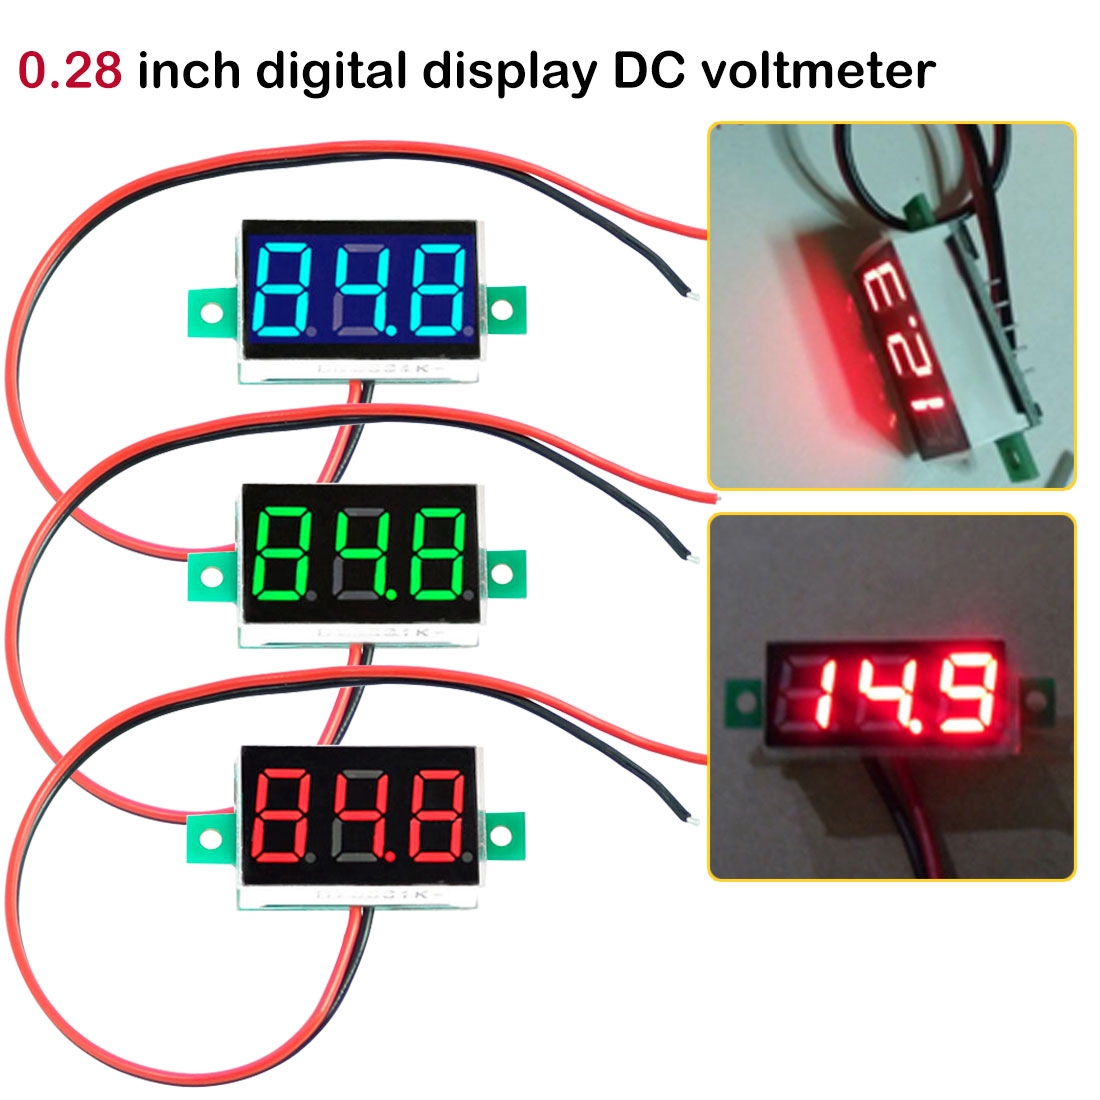 Mini LCD Digital Voltmeter Voltage Meter Panel Volt Tester Detector Monitor 2Wire Red Green Blue Yellow LED 0.28inch DC 2.5-30V